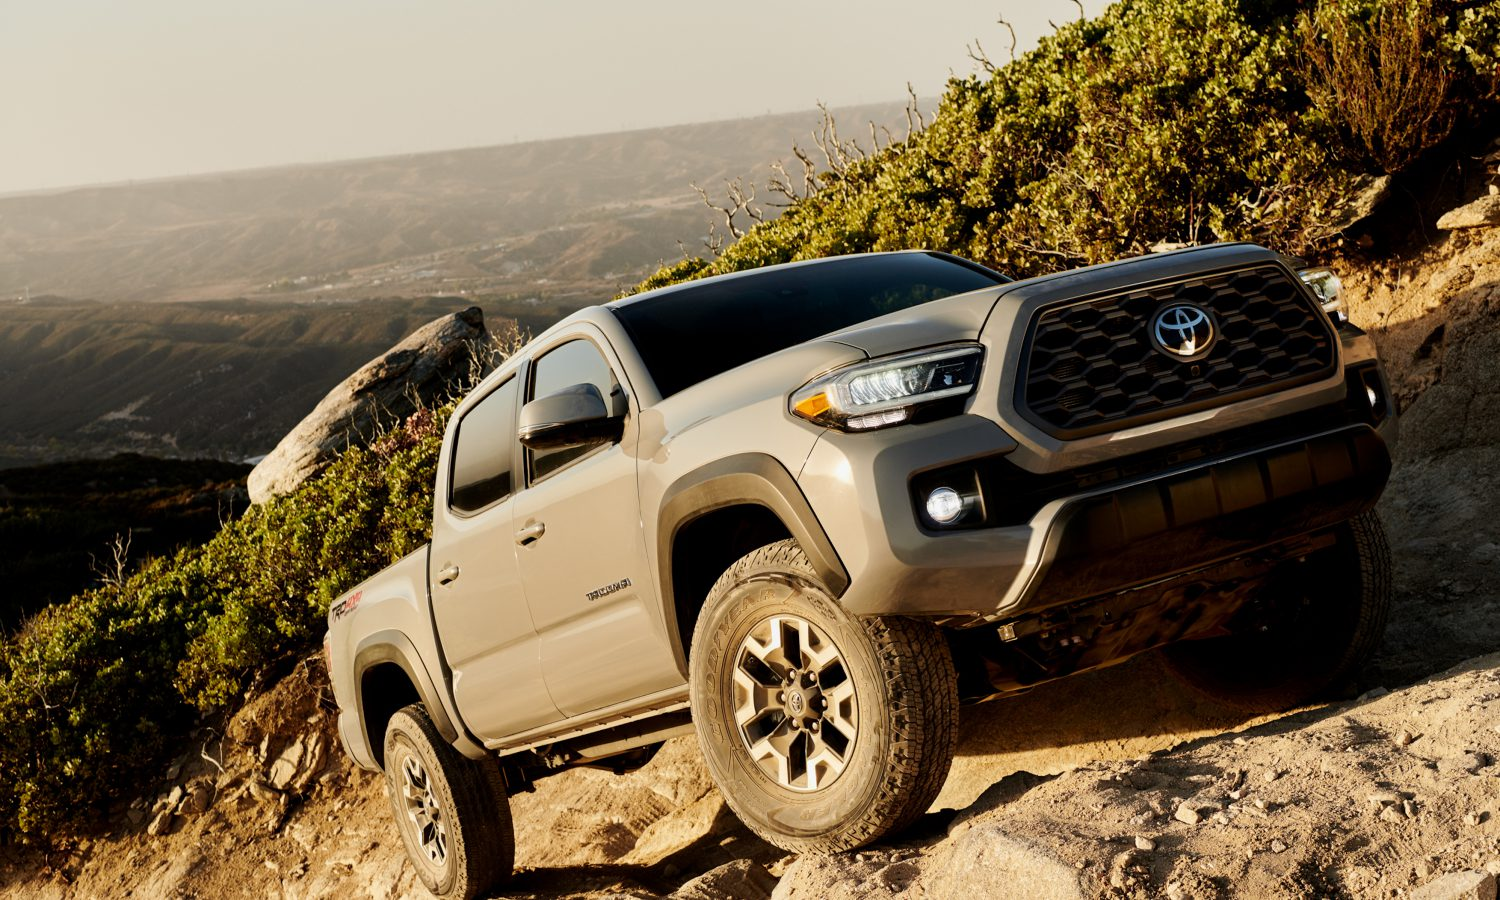 2020 Toyota Tacoma Positioned To Continue Segment Leadership With Host Of New Upgrades Toyota Usa Newsroom